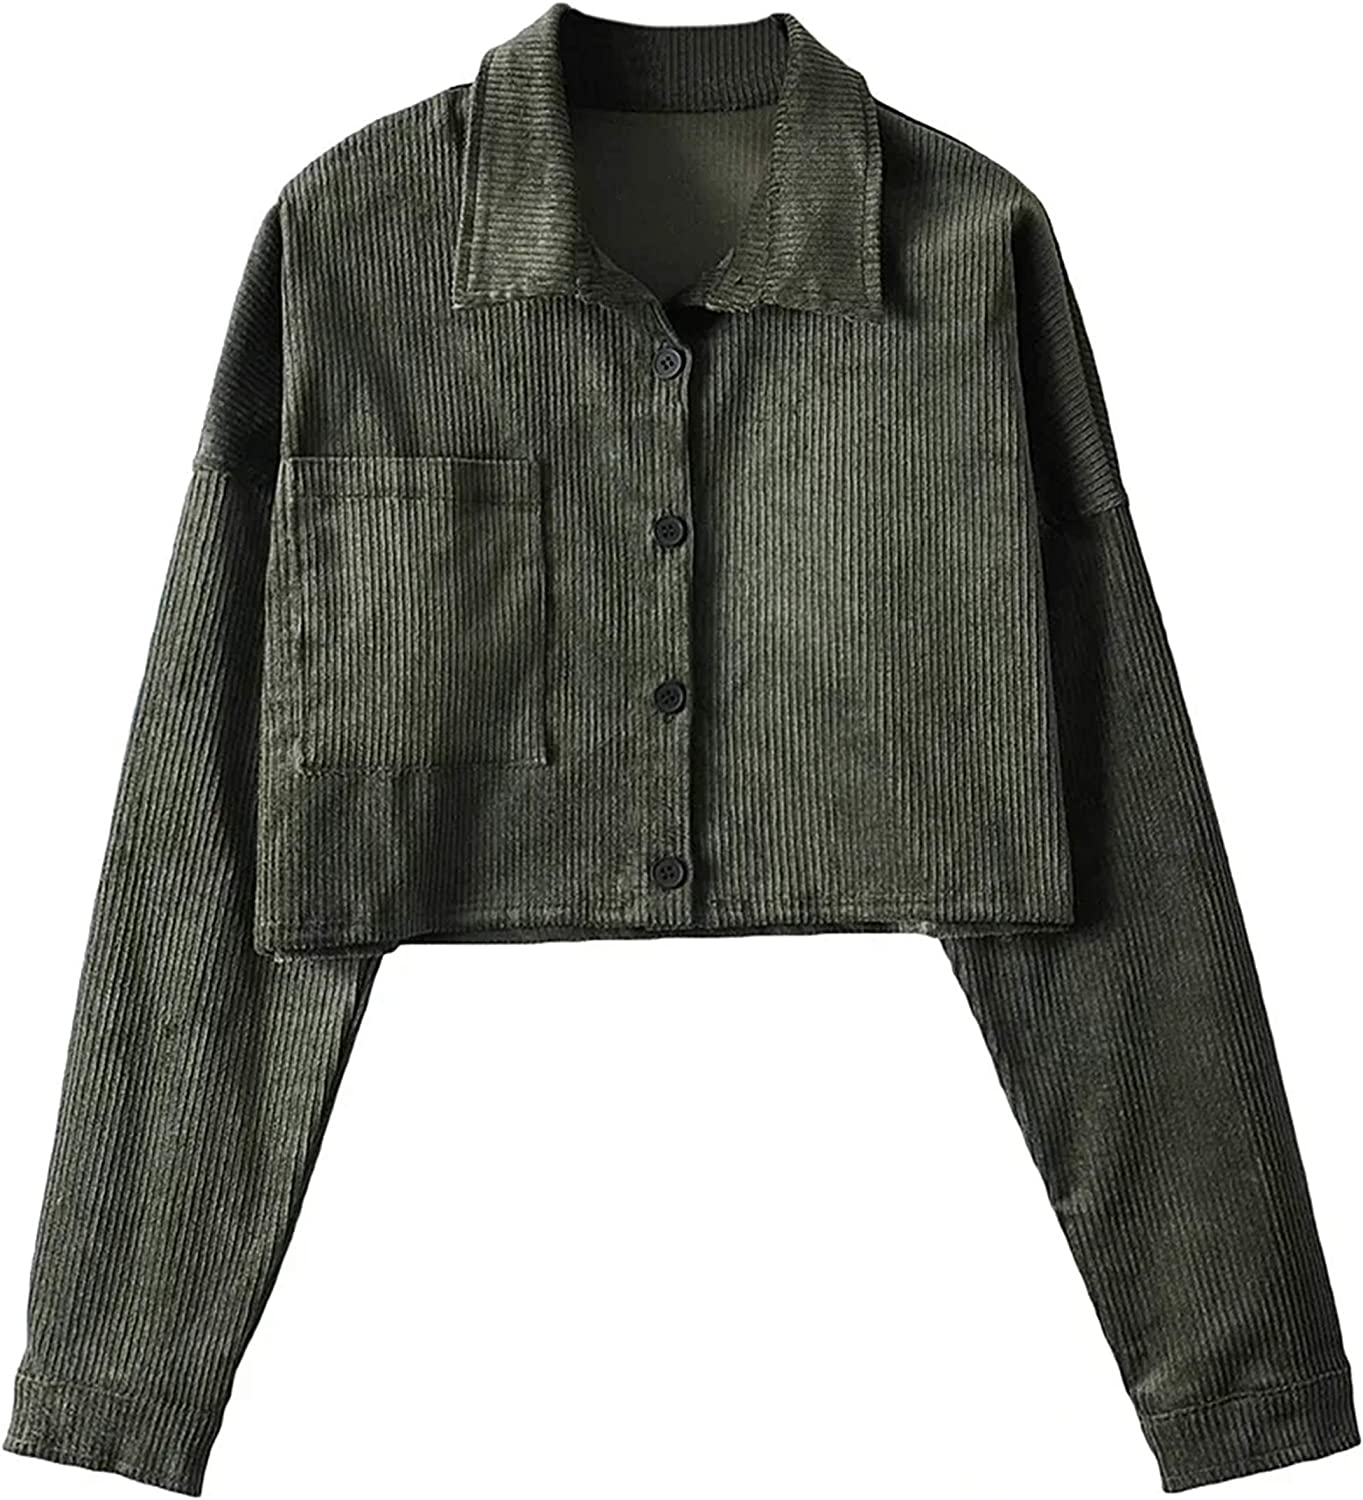 UANEO Womens Corduroy Button Down Long Sleeve Casual Cropped Jackets Shackets(Green-S)